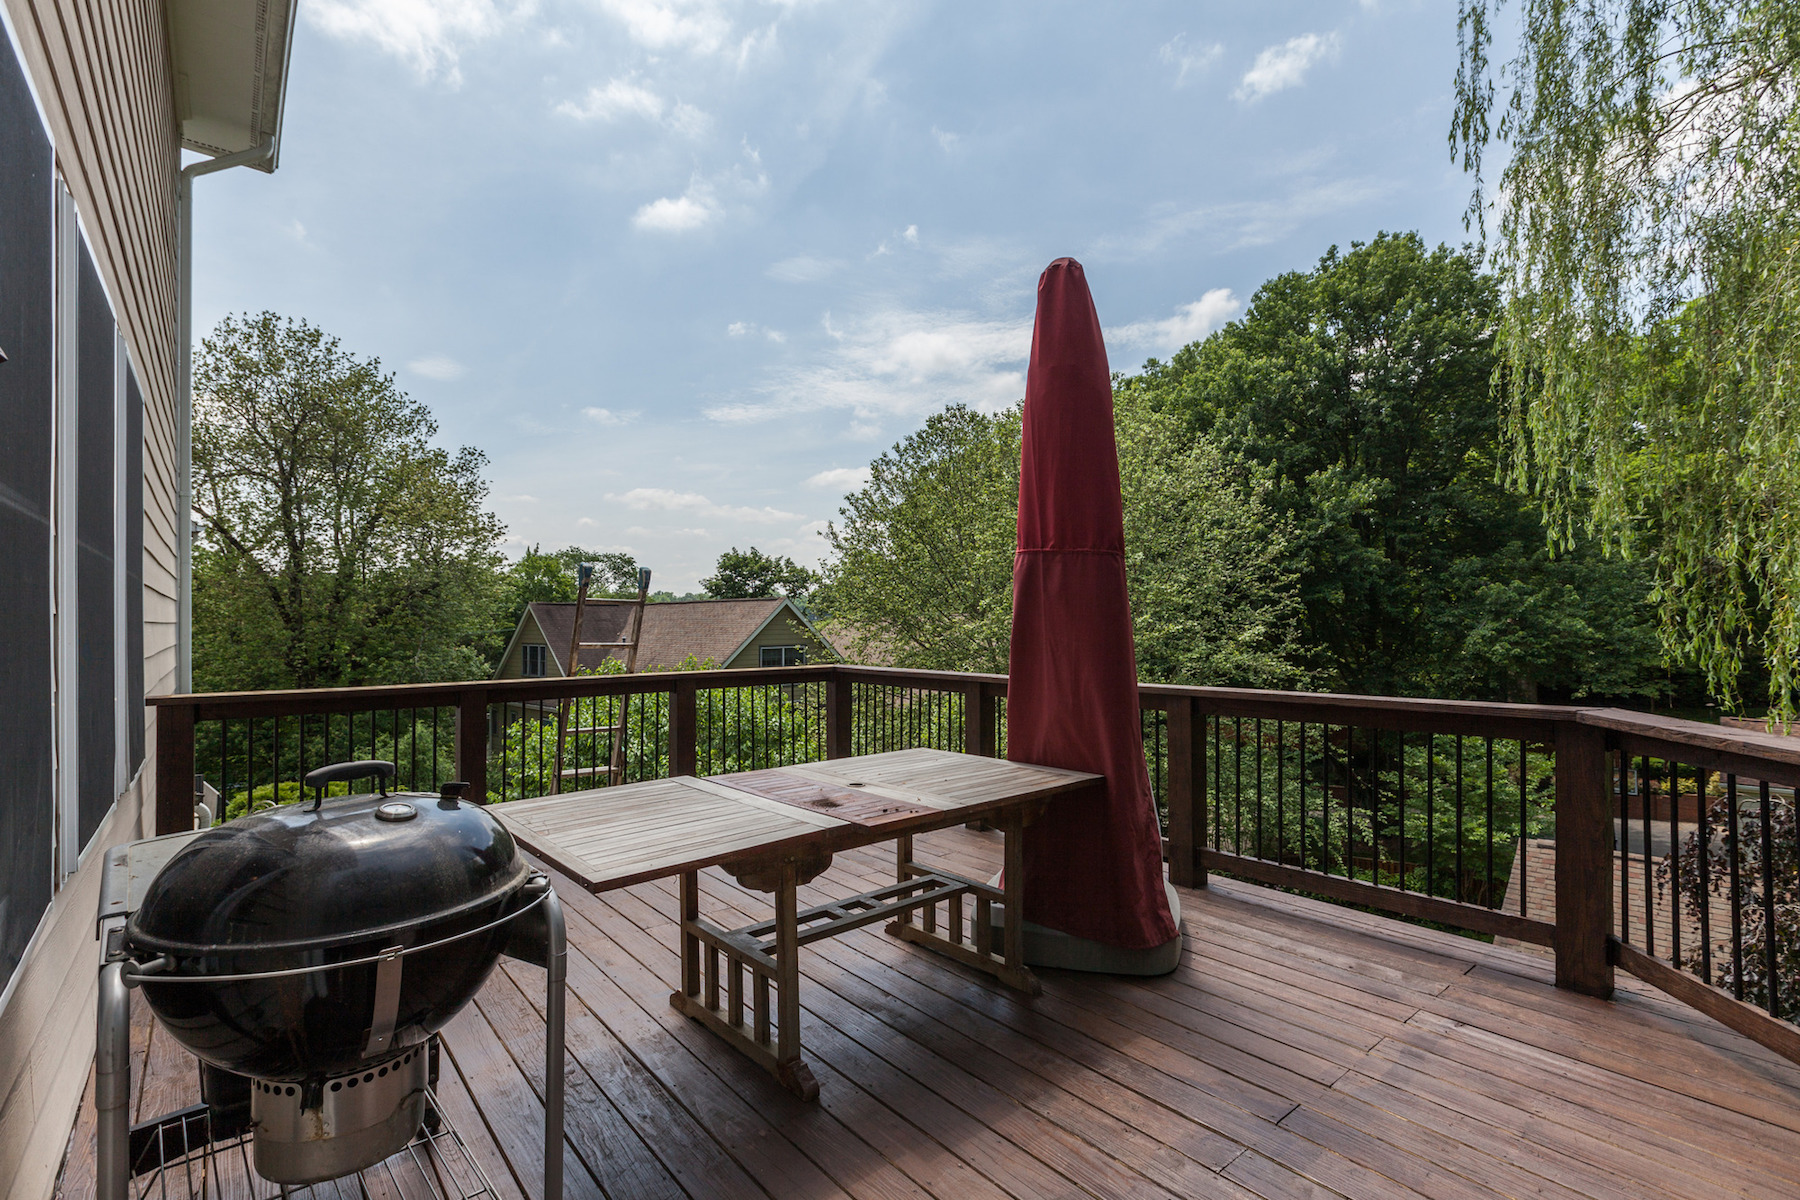 Additional photo for property listing at 6409 Macarthur Boulevard, Bethesda 6409 Macarthur Blvd Bethesda, Maryland 20816 United States